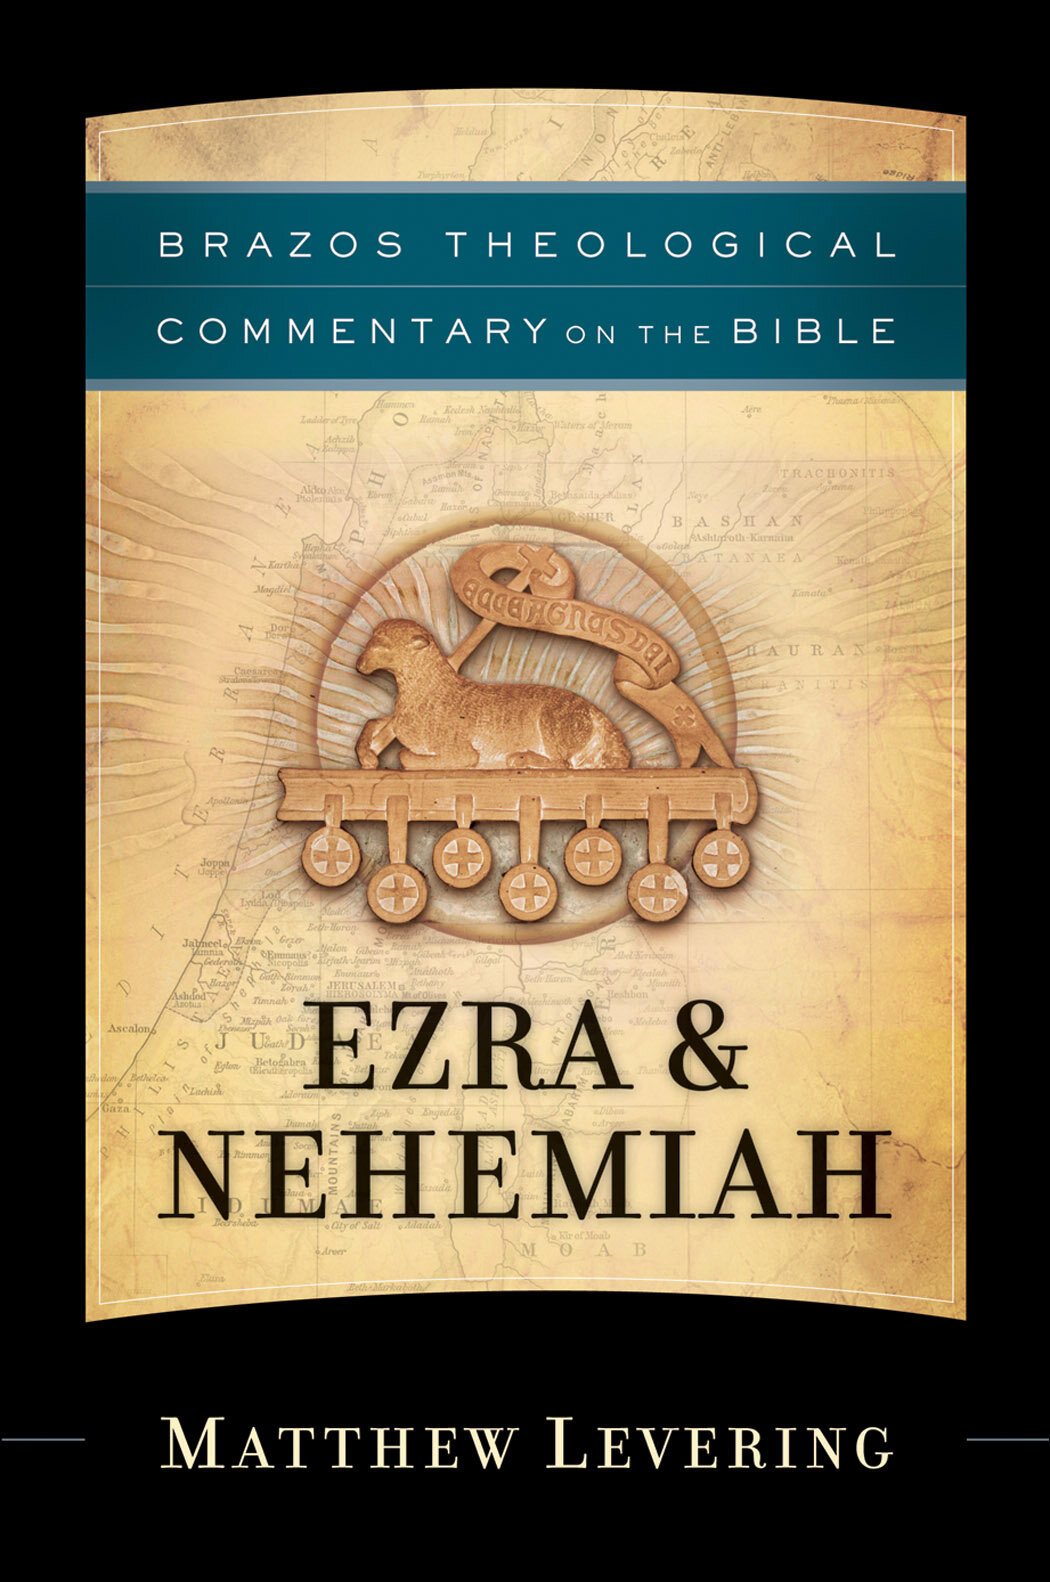 Ezra & Nehemiah (Brazos Theological Commentary on the Bible | BTC)